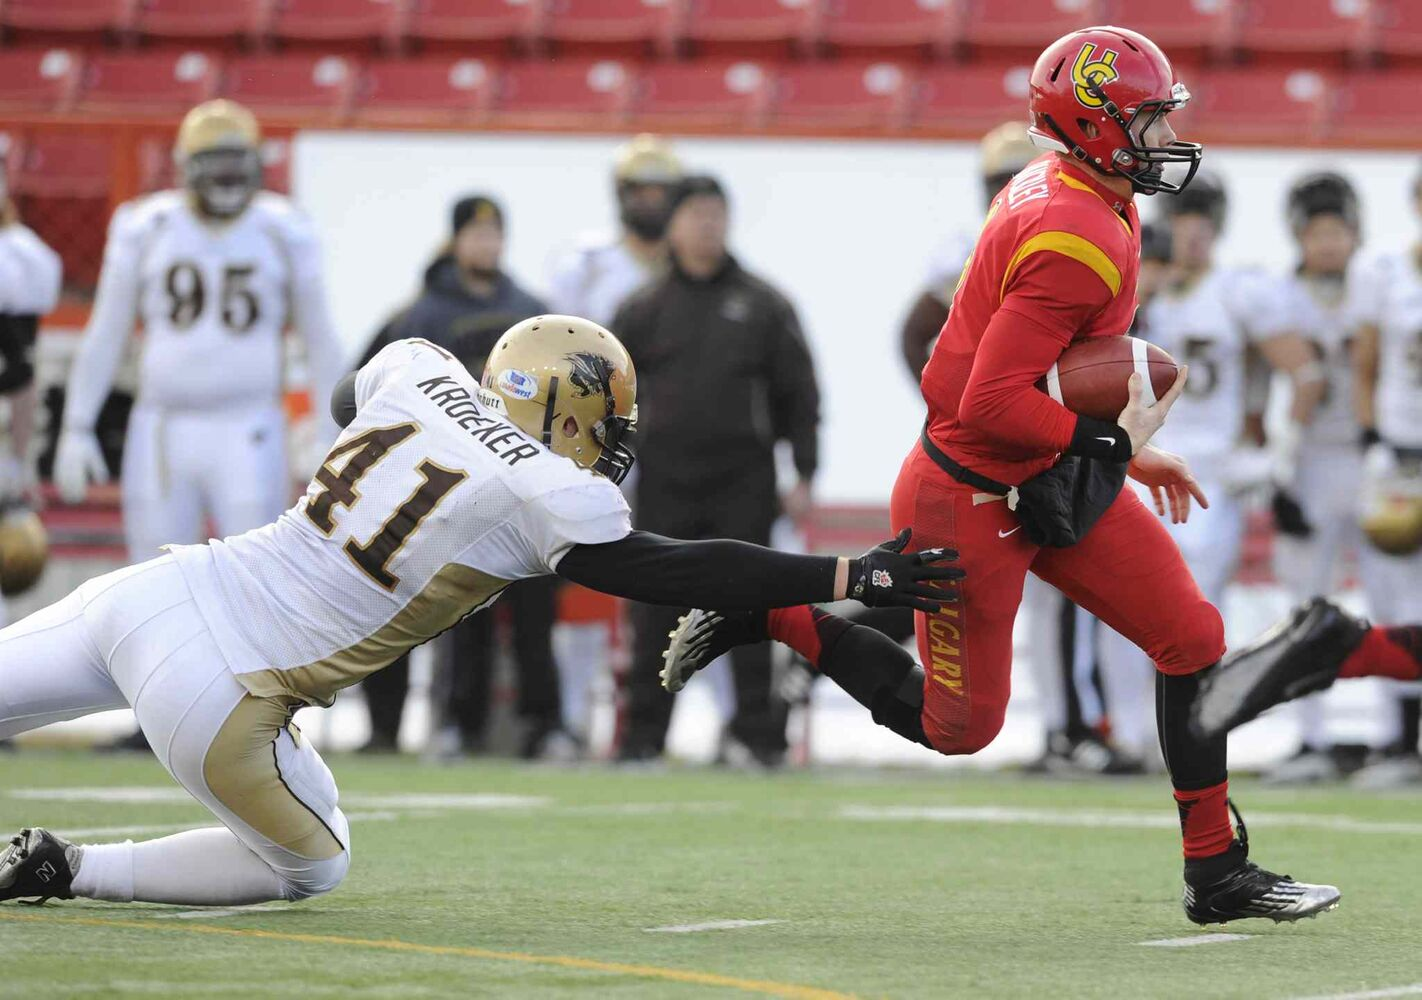 University of Calgary Dinos quarterback Andrew Buckley (right) breaks away from Lauren Kroeker of the University of Manitoba Bisons during the first half of Hardy Cup CIS football action in Calgary Saturday. (Larry MacDougal / The Canadian Press)